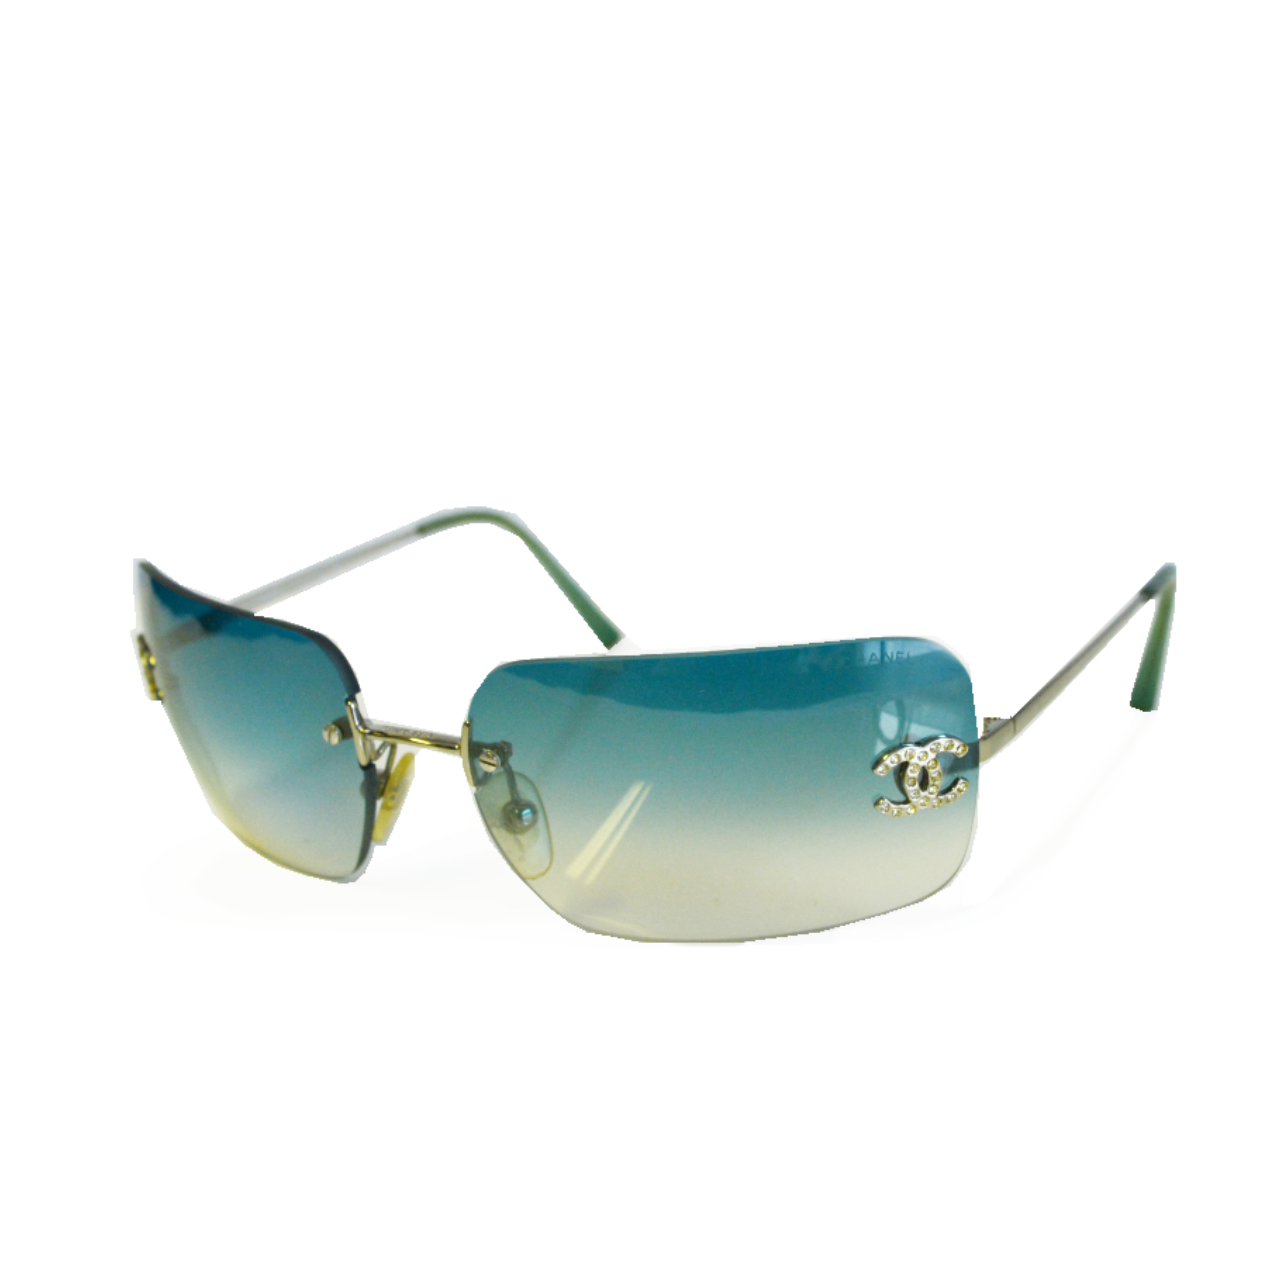 Vintage Chanel Diamante Rimless Sunglasses in Aqua Green/Blue | NITRYL